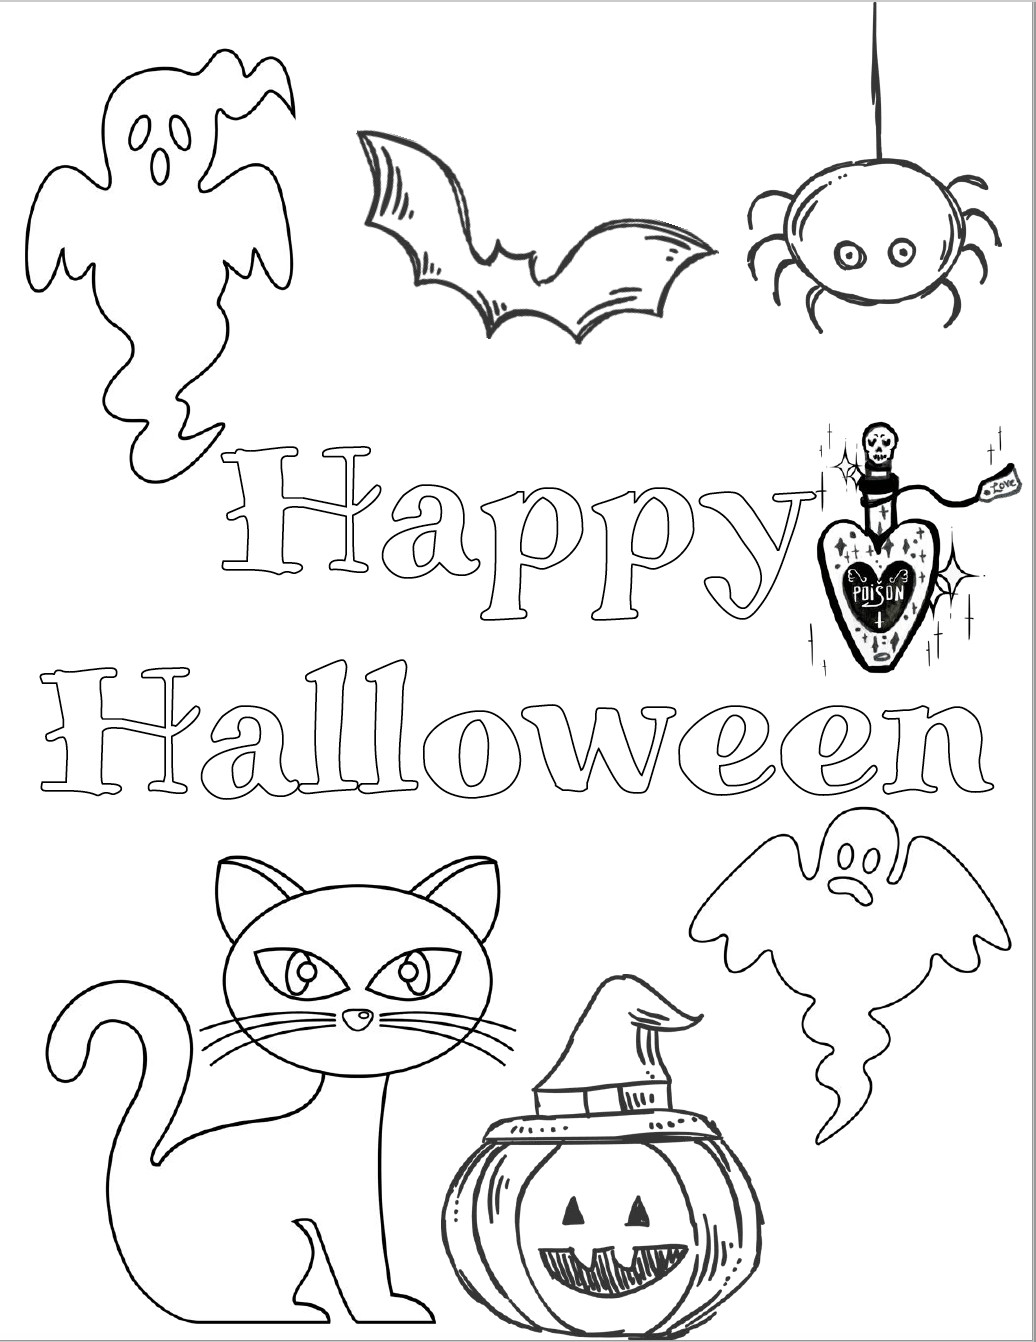 Halloween Coloring Sheets For Kids  5 Free Printable Halloween Coloring Pages for Kids